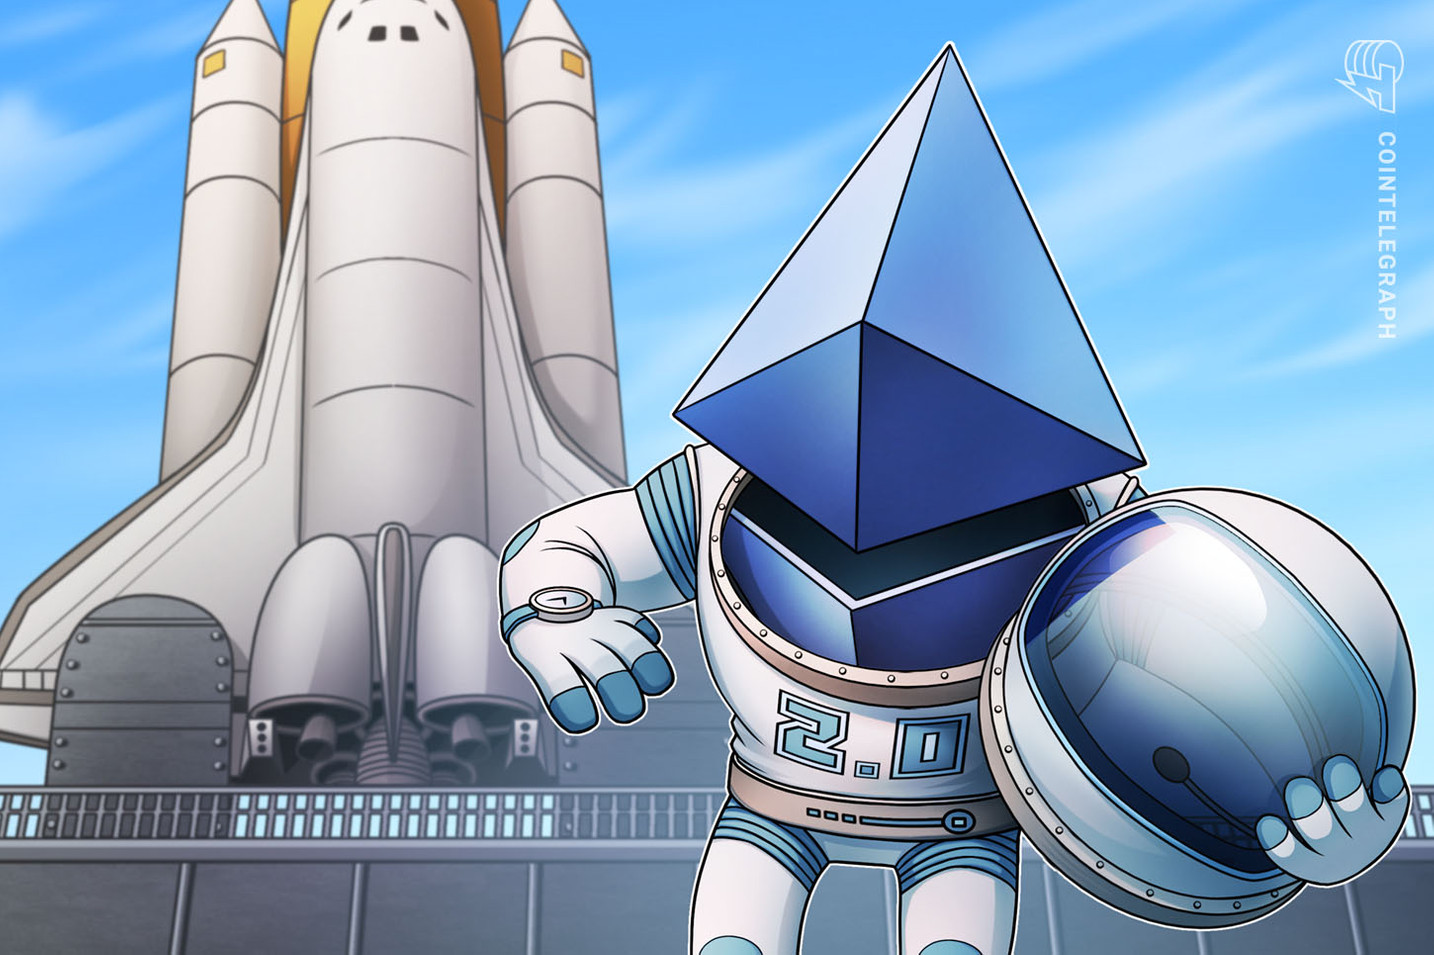 Ethereum 2.0 set to launch Dec. 1 after late surge in deposits